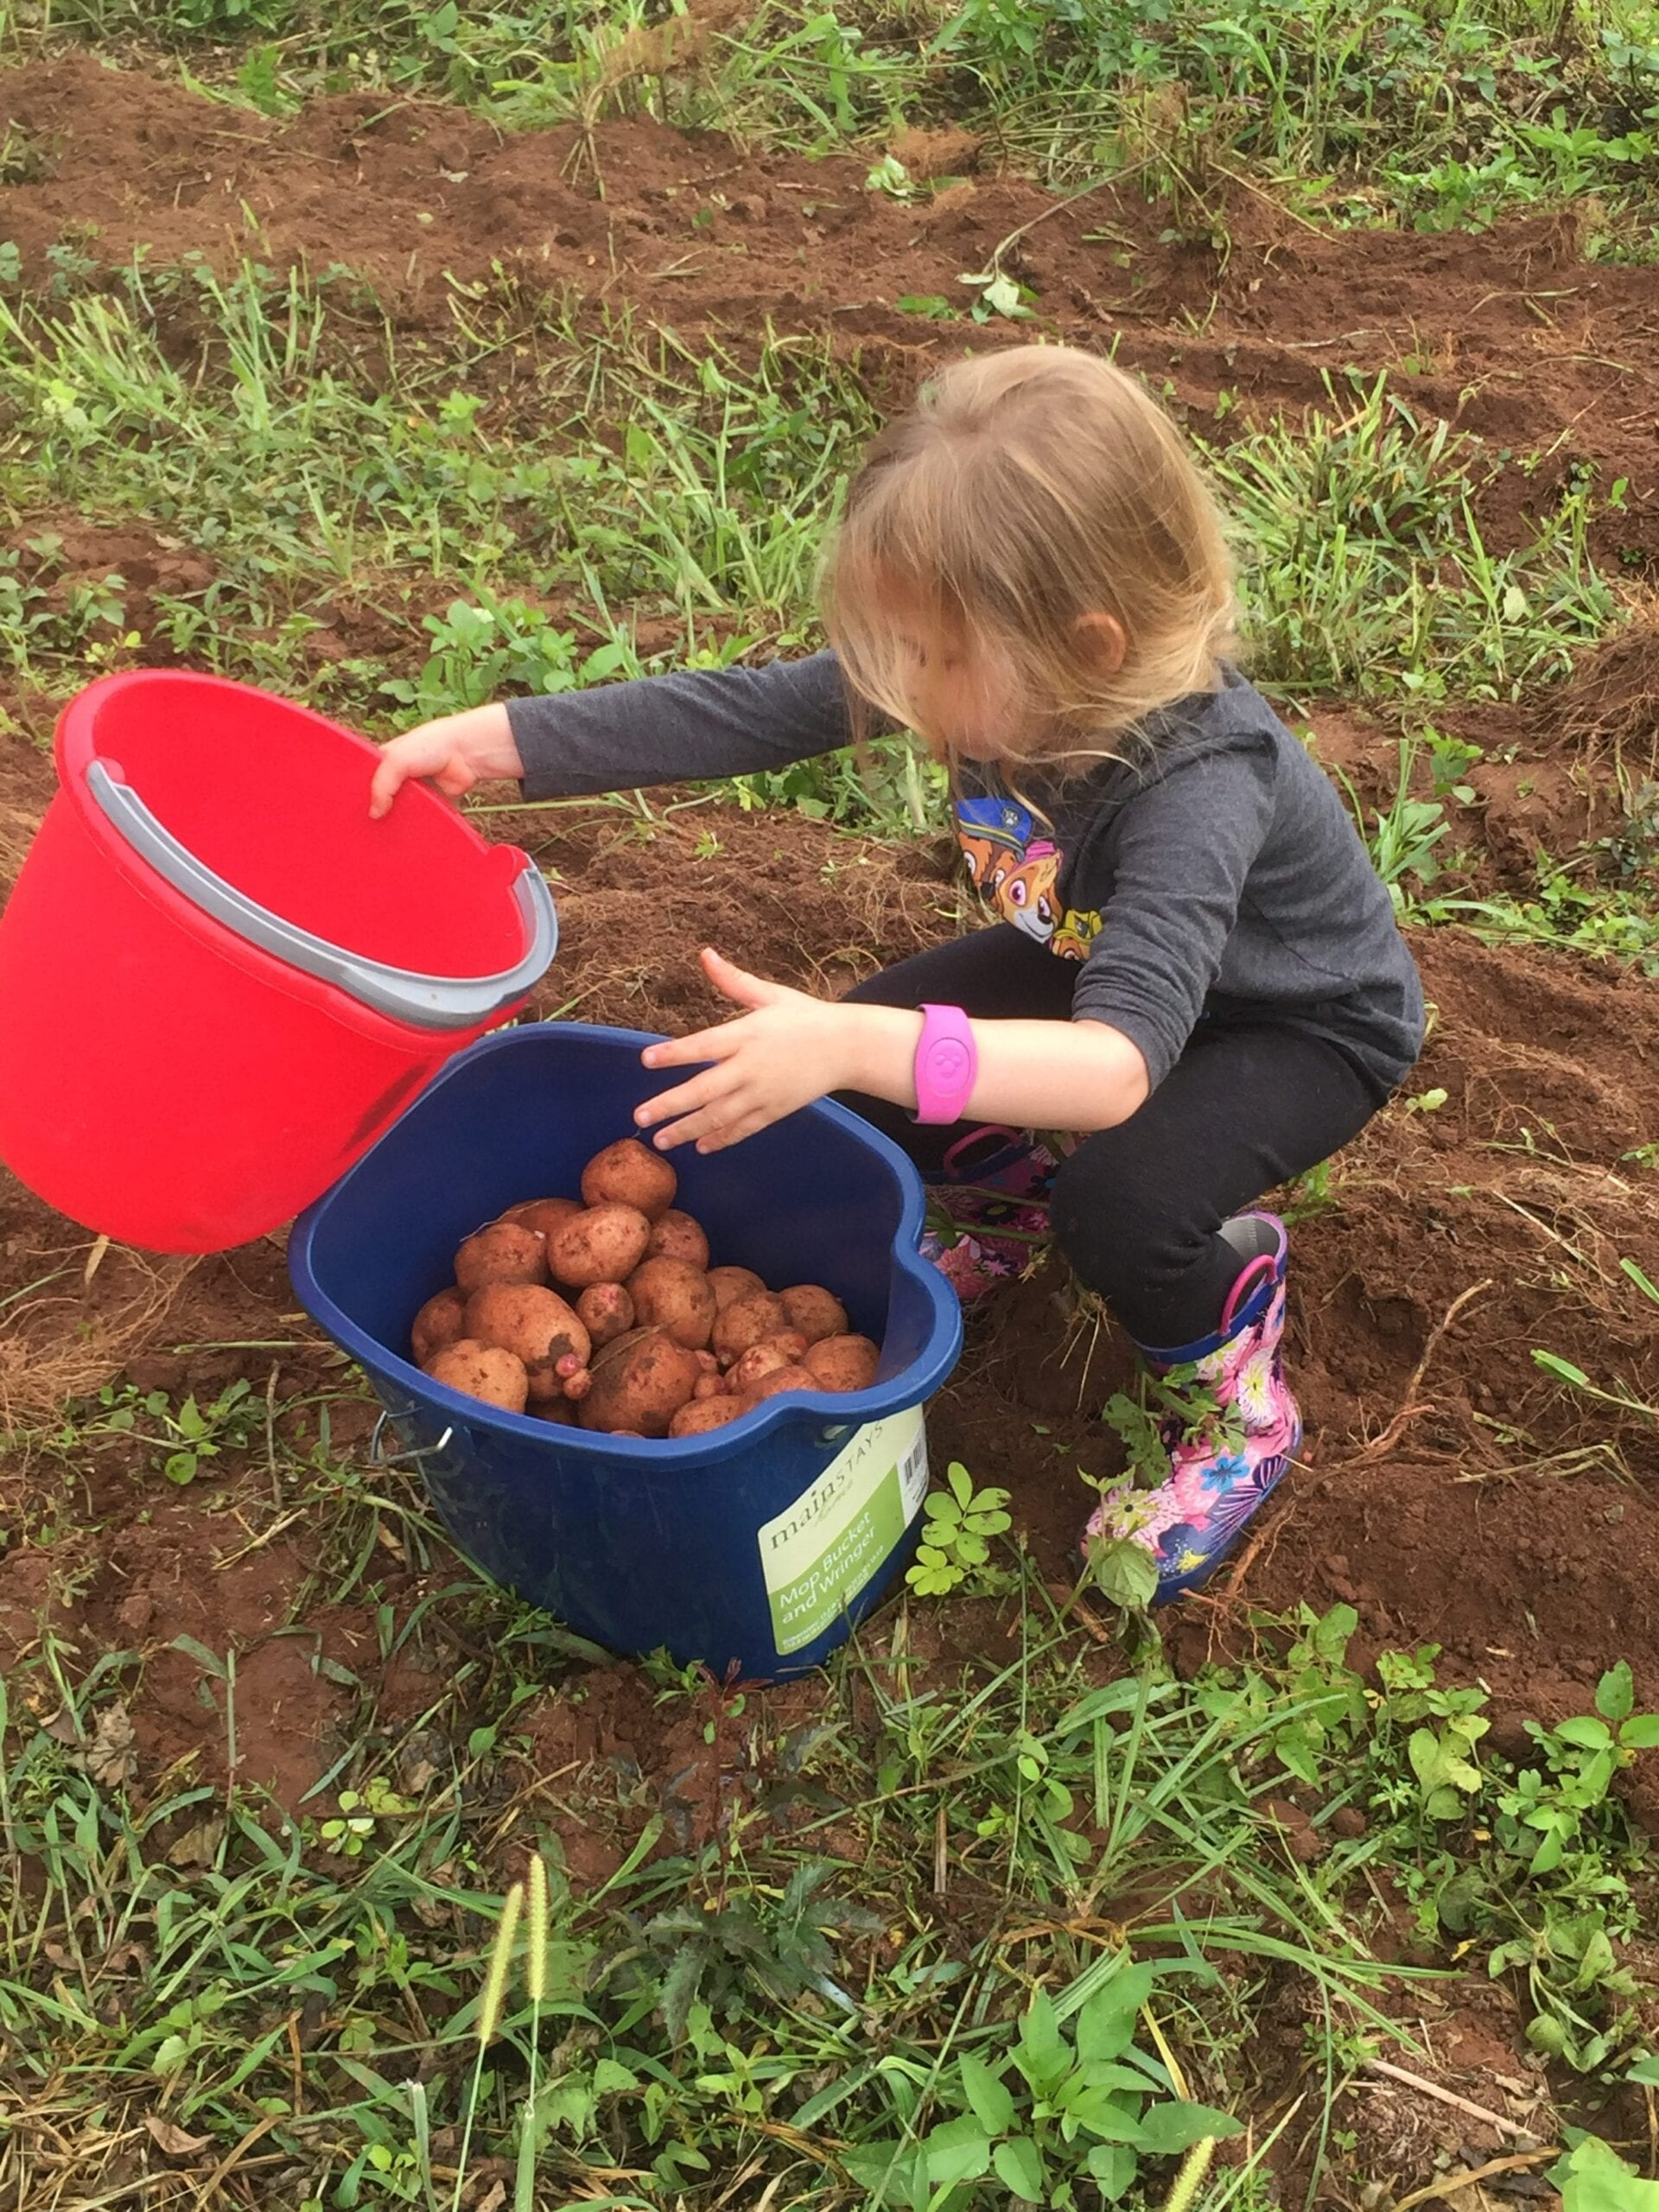 Little girl picking potatoes into bucket at farm